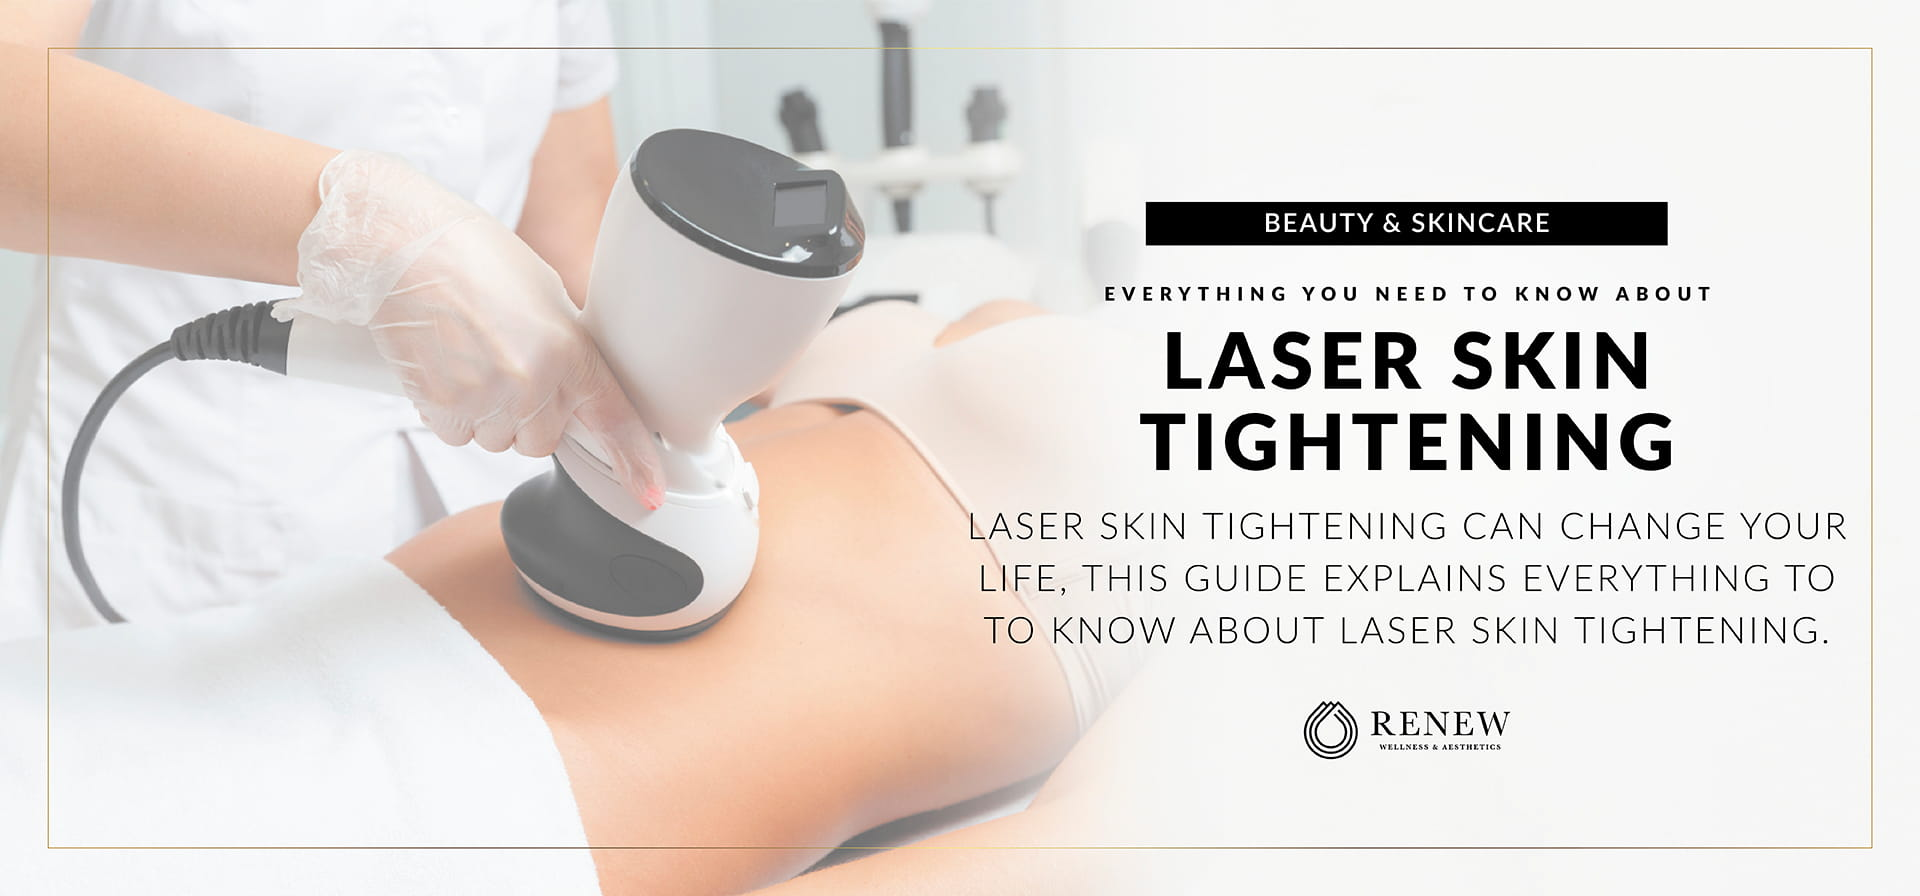 Everything to Know About Laser Skin Tightening